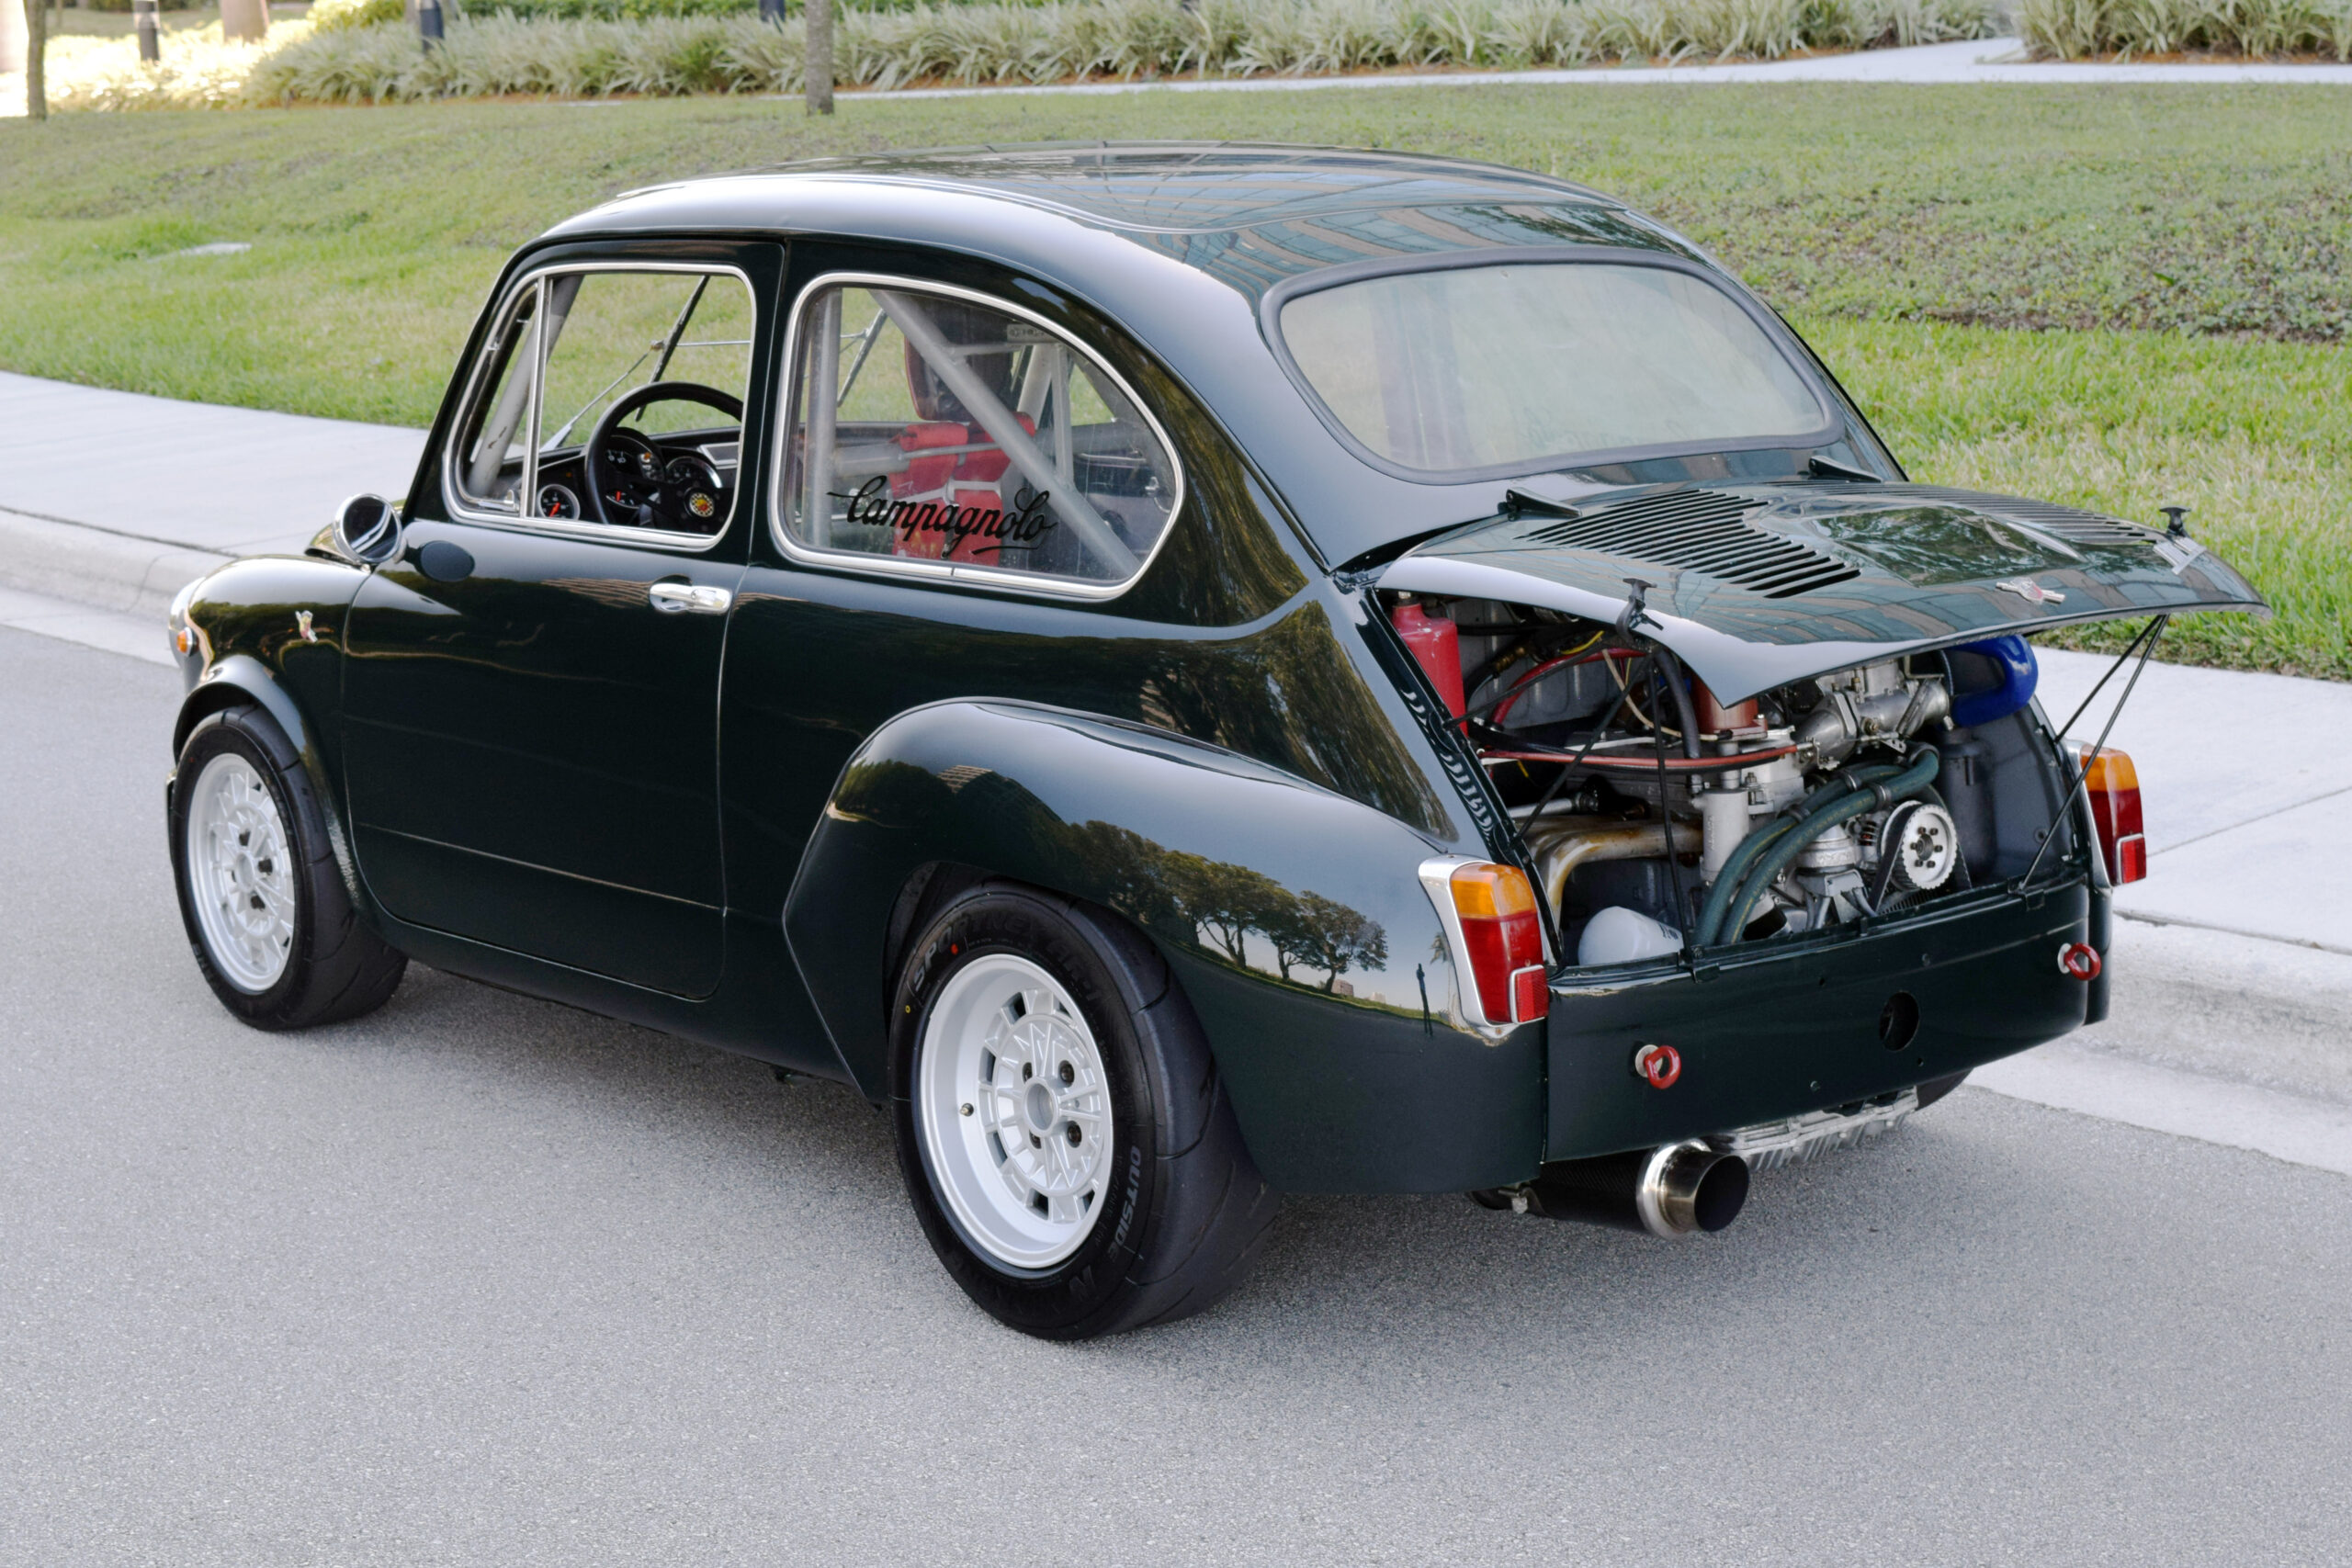 1967 Fiat 600 race car, REAL ABARTH components, 113 HP, street legal, 5-speed